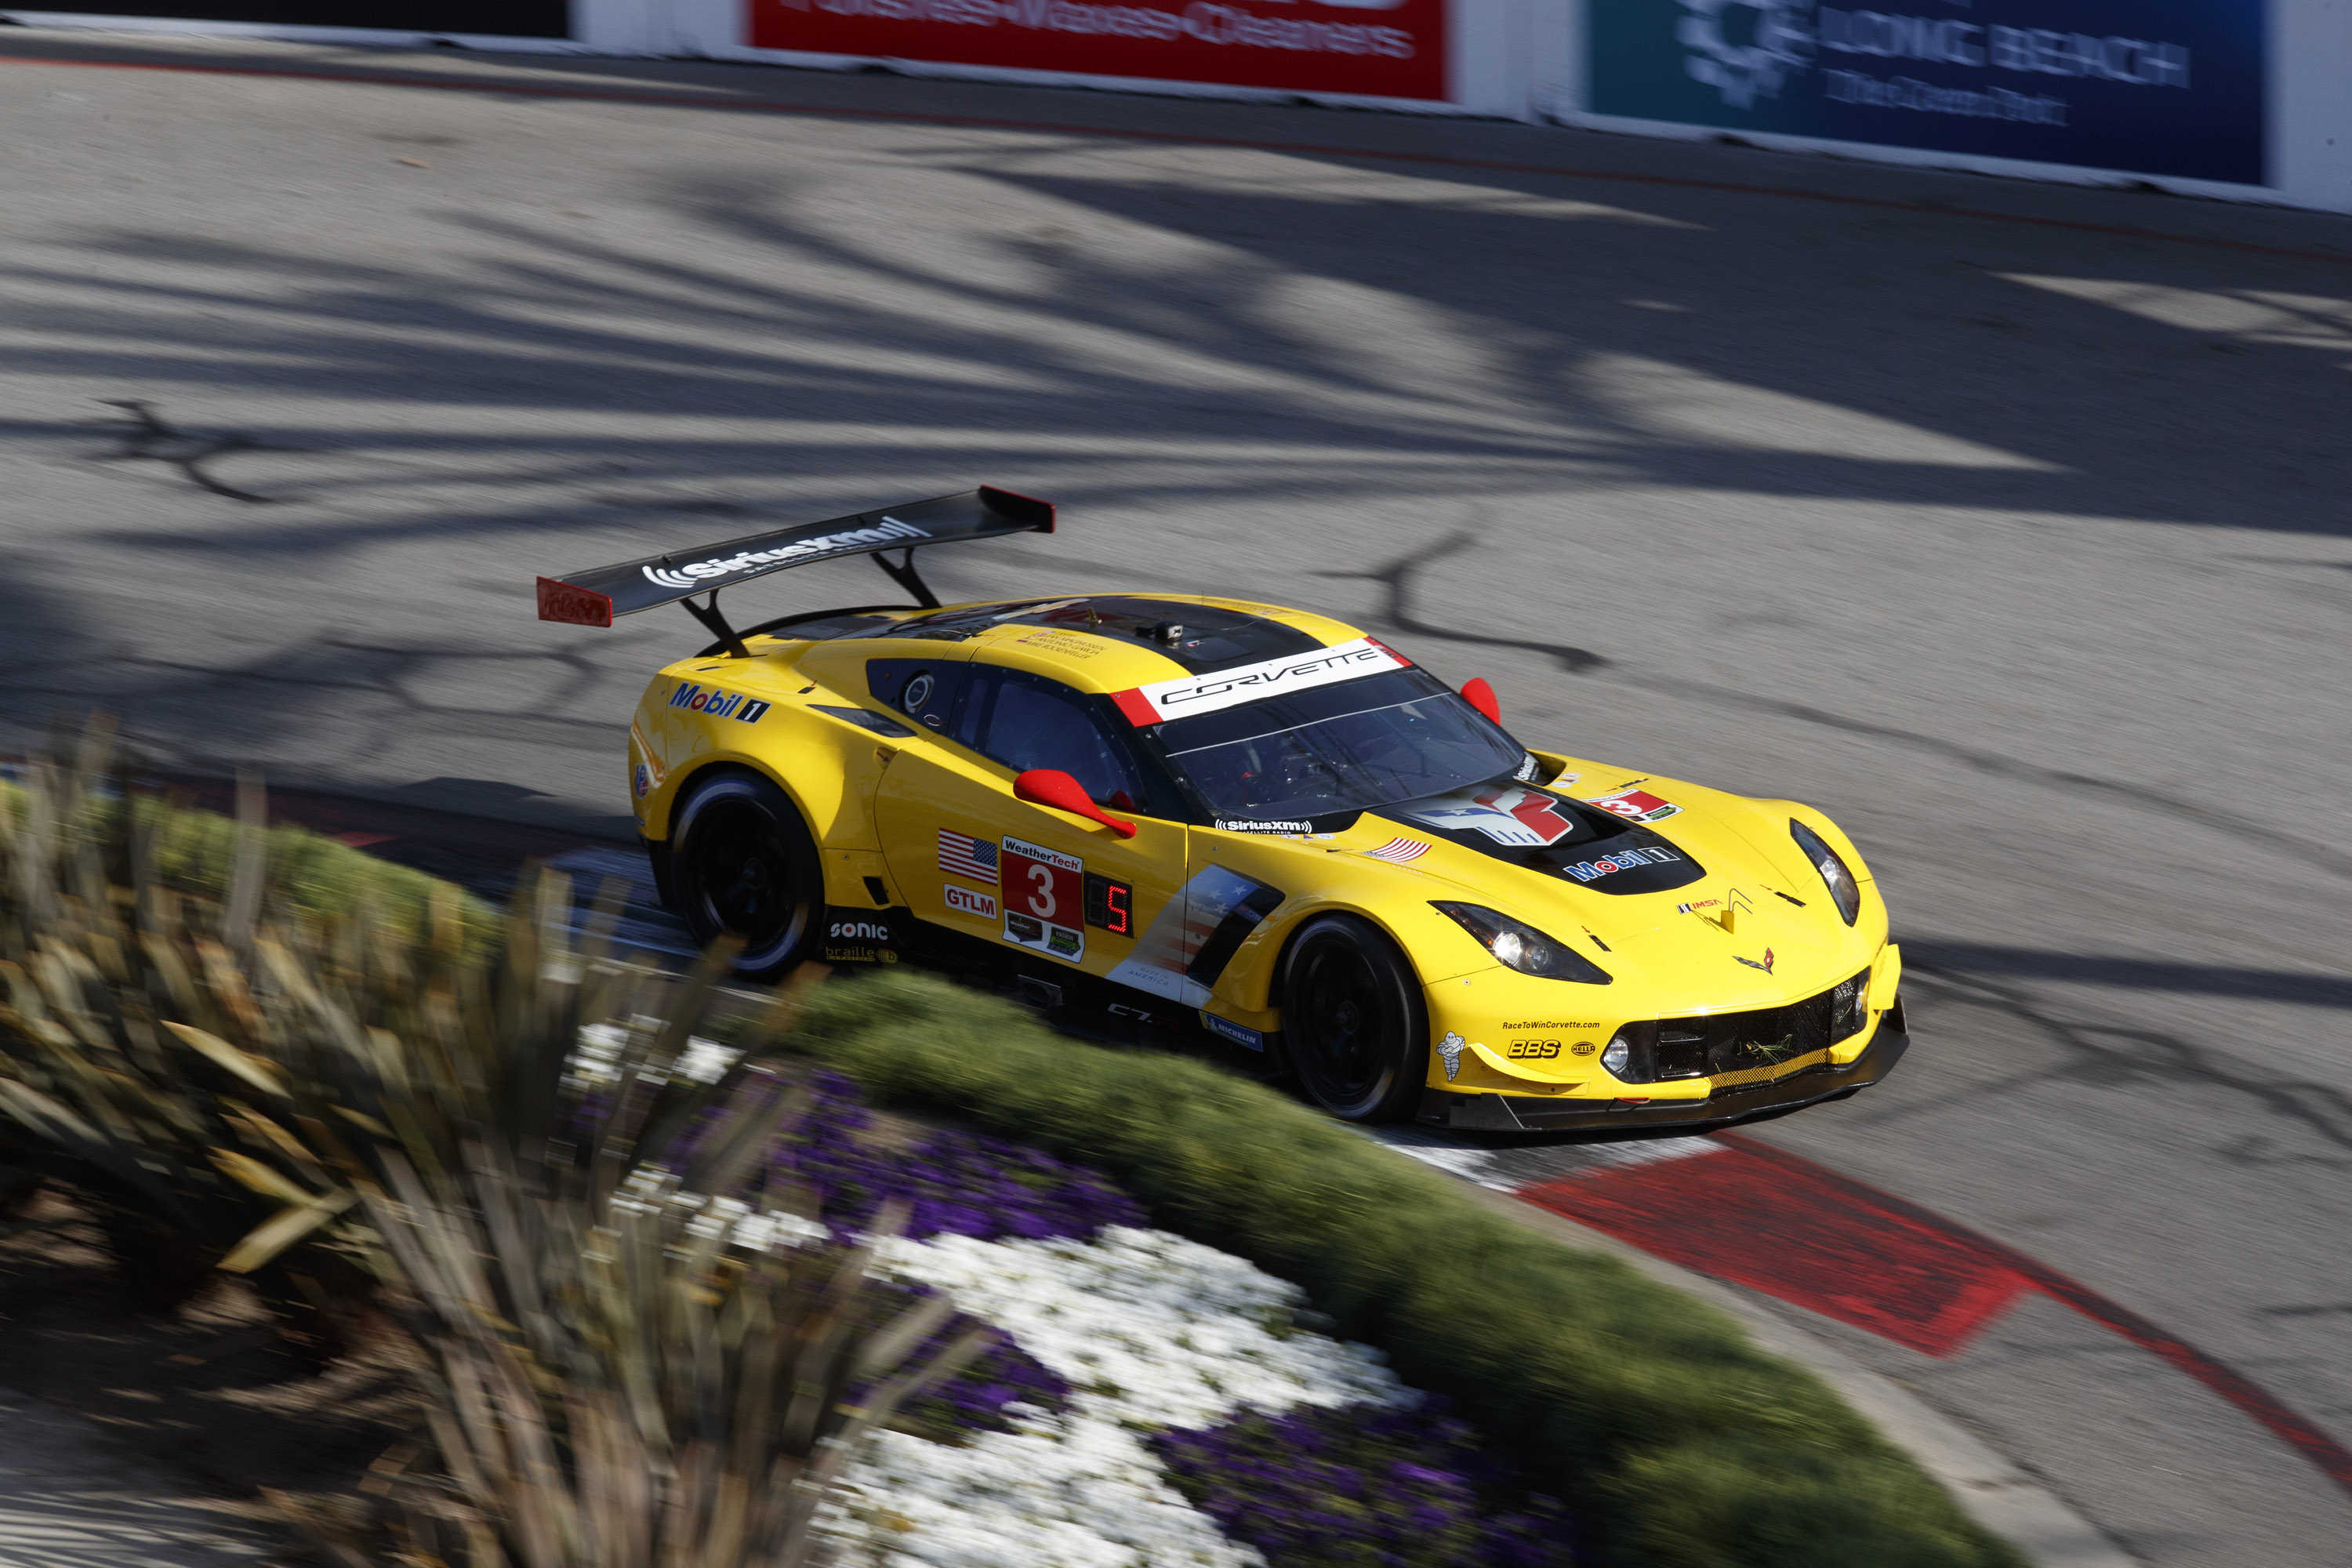 corvette racing corvette racing at long beach gavin milner go back to back. Black Bedroom Furniture Sets. Home Design Ideas